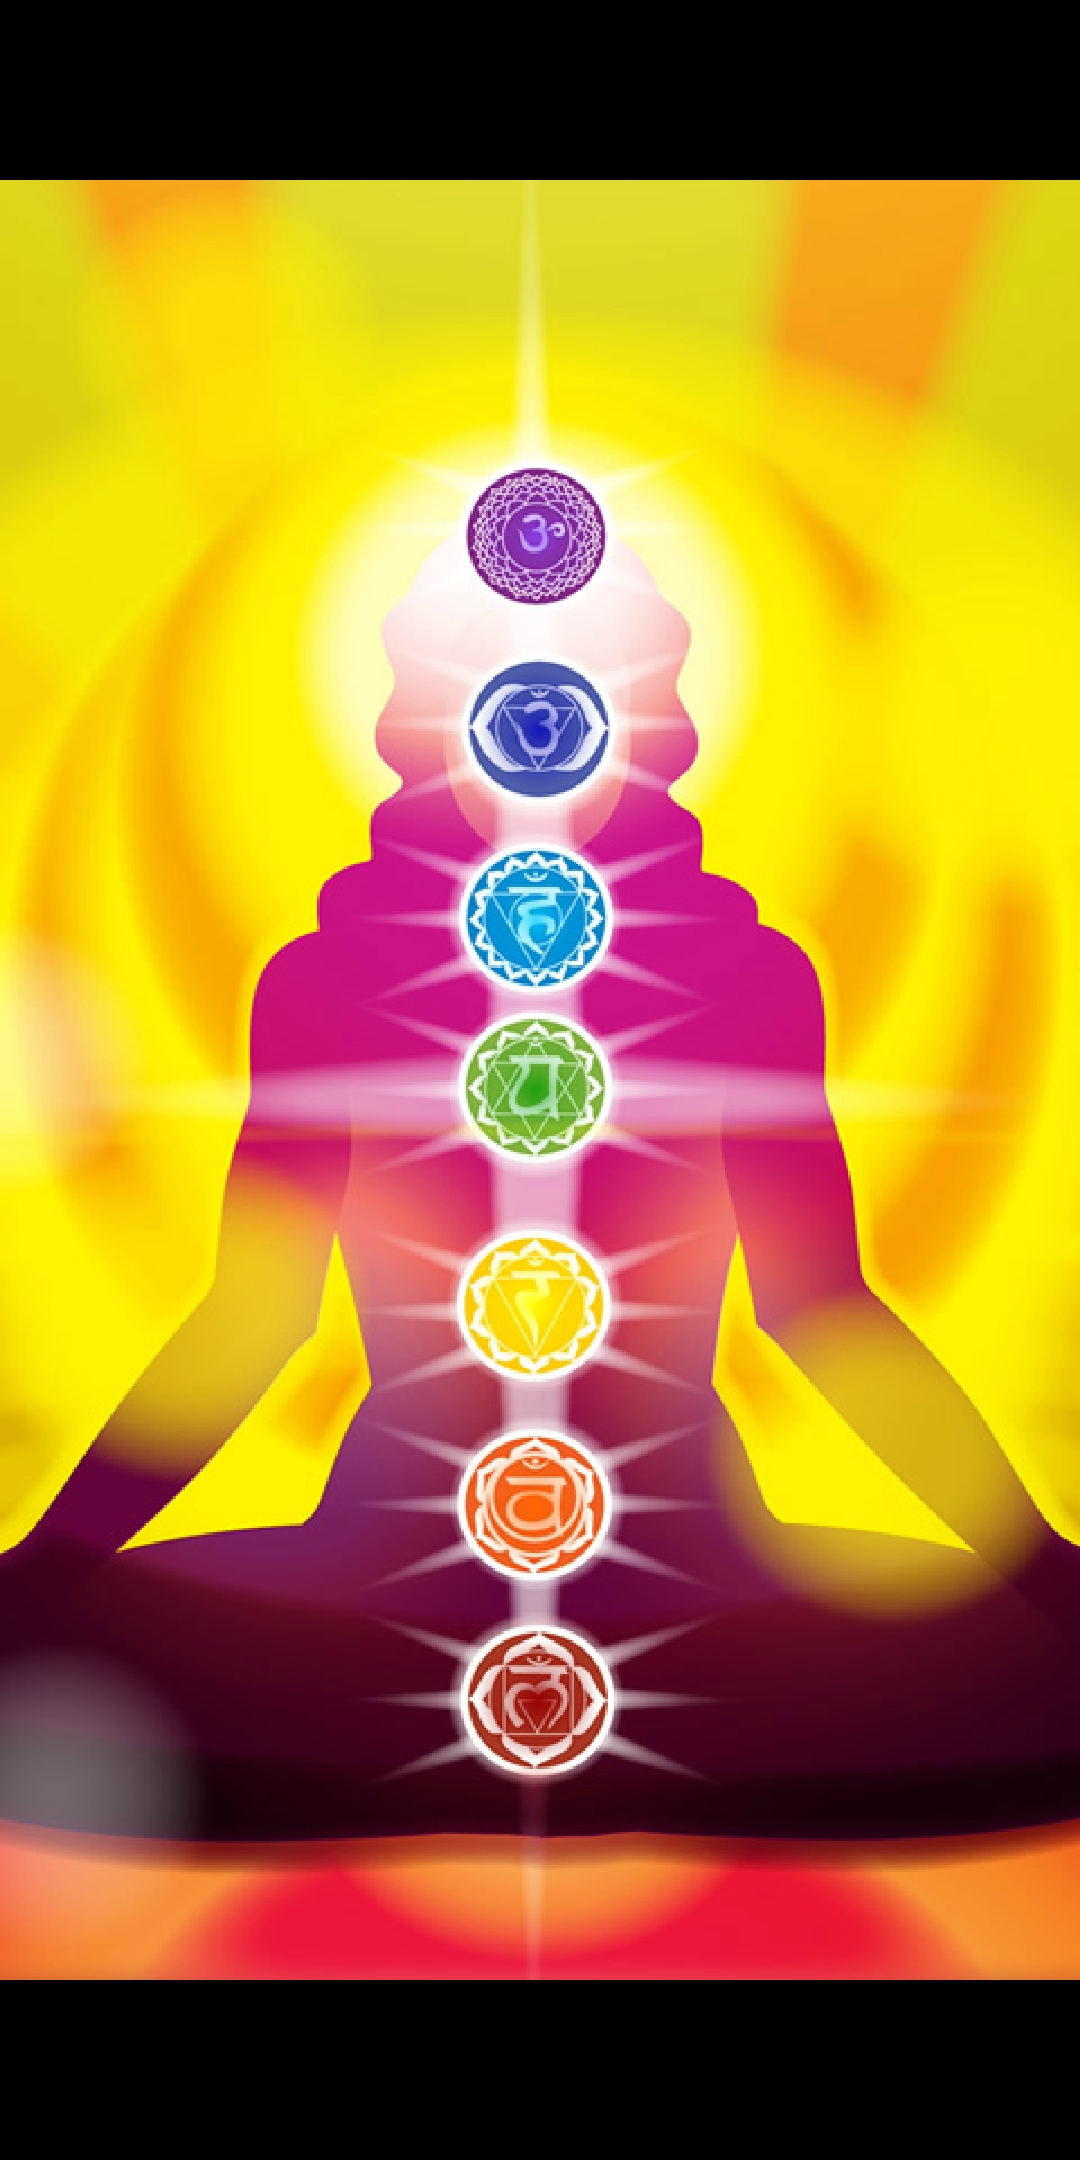 Healing with Sound - MantrasEach chakra has a sound which balances the energies. Just like in reiki, balancing the energies allow them to flow clearly around the body, and the body and emotions can then heal themselves and symptoms are reduced.I downloaded an app to listen to and help focus my thoughts when sending distance reiki. But when I tried it to see what the sound was like, I noticed my own dog, was yawning away, and releasing due to the sound having a positive effect on her.The app is simply called Mantras for the Chakras, and will play the mantra / sound when you select the chakra you want to balance. I have had this app for a while so there may be better ones, but this is a free app, and I like that it will keep playing after the screen saver times out on my phone.HertzThis isn't related to chakras, but the body in general. It is a recommendation I heard on an app recently, so haven't experimented with it much. It is also on YouTube, so not something you can put on to have playing all night, as when the screen on your phone etc times out, it stops YouTube playing.Different frequencies of sound have different properties.432 Hz is a relaxing frequency which can help with sleep528 Hz can heal the whole body, even repairing DNAThere are many other frequencies. I have mainly listened to 528 Hz, and found it a lovely relaxing sound.